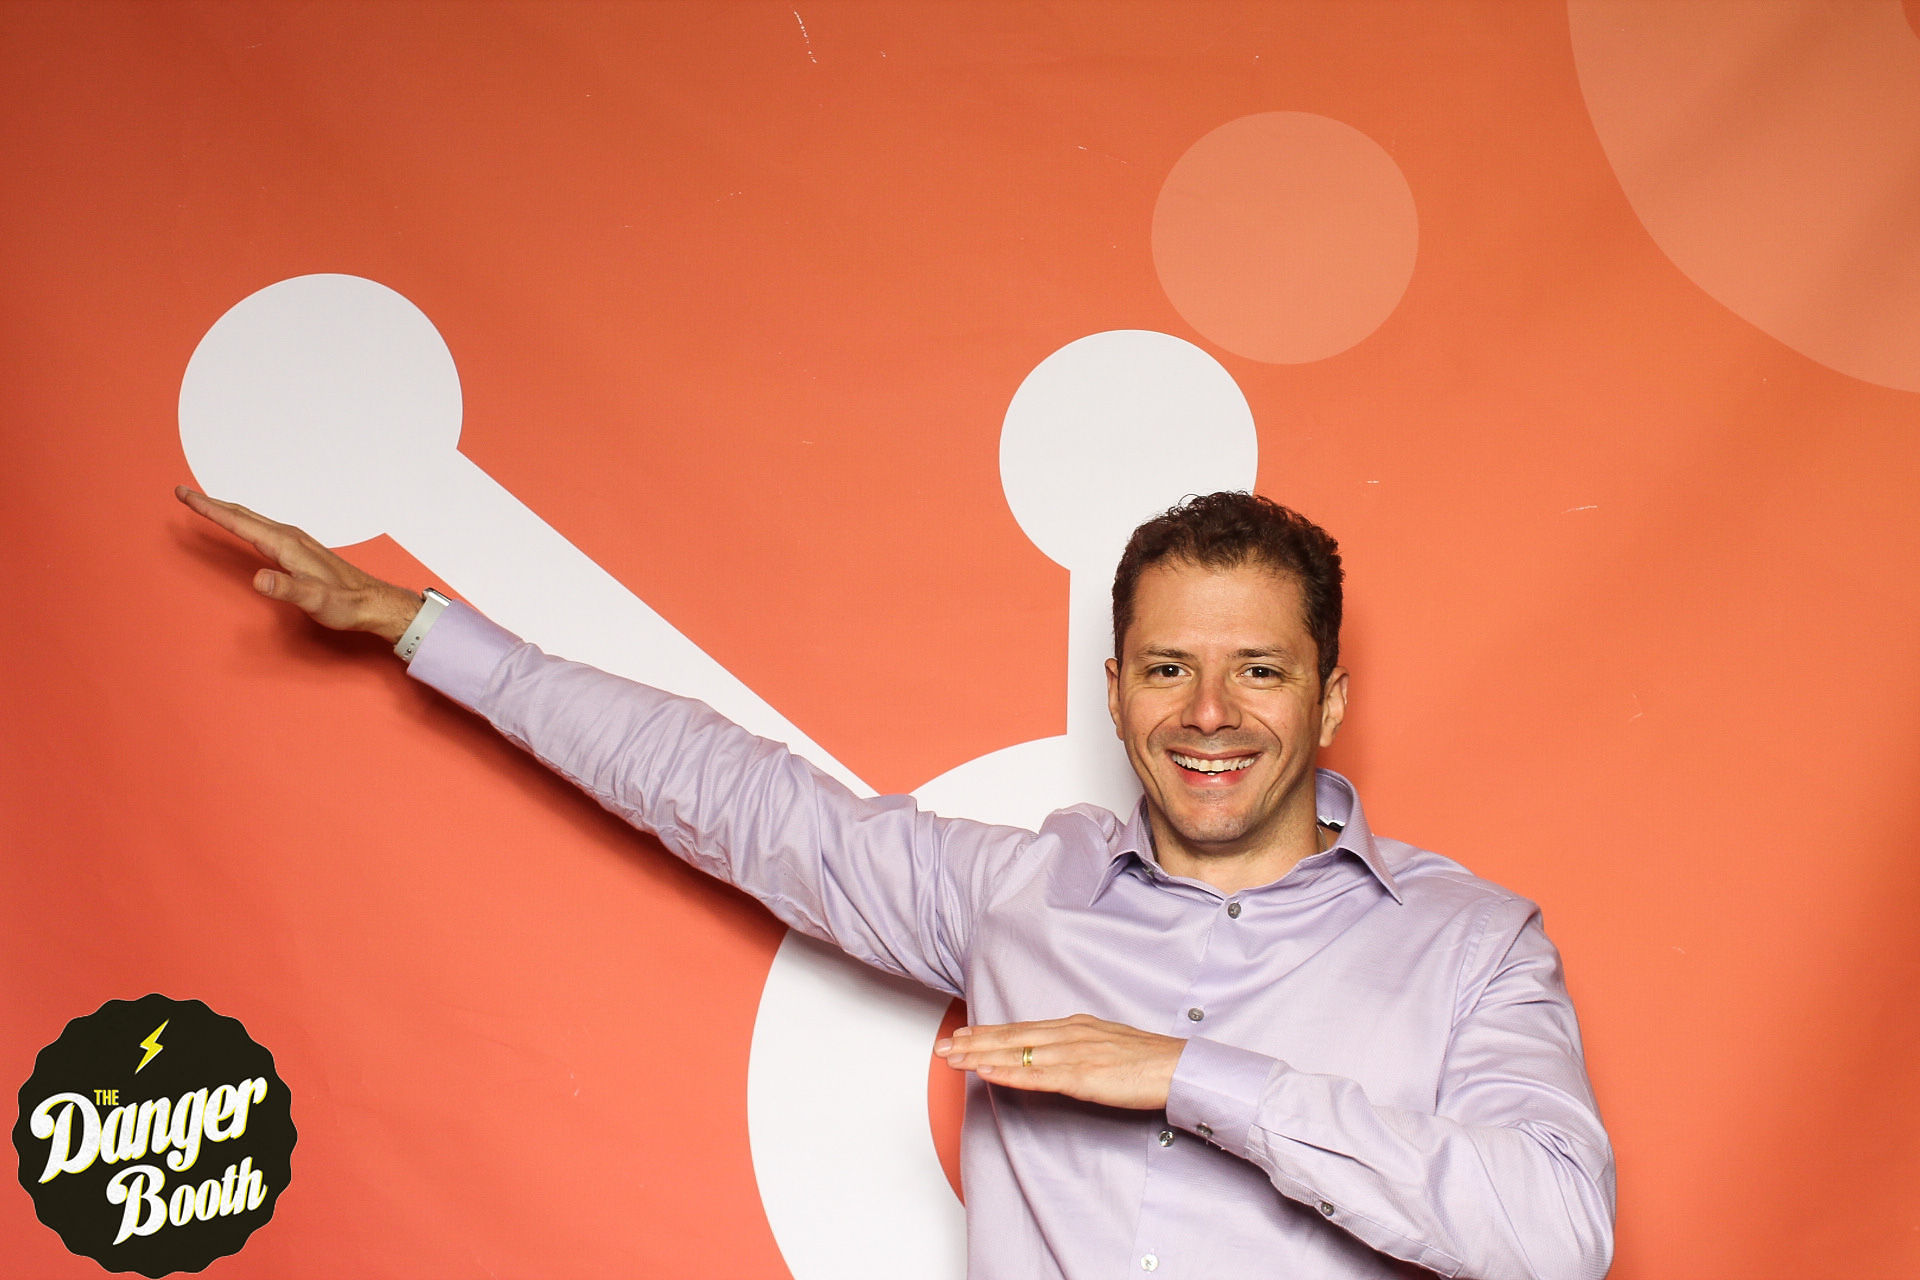 hubspot-partner-day-2019.jpg